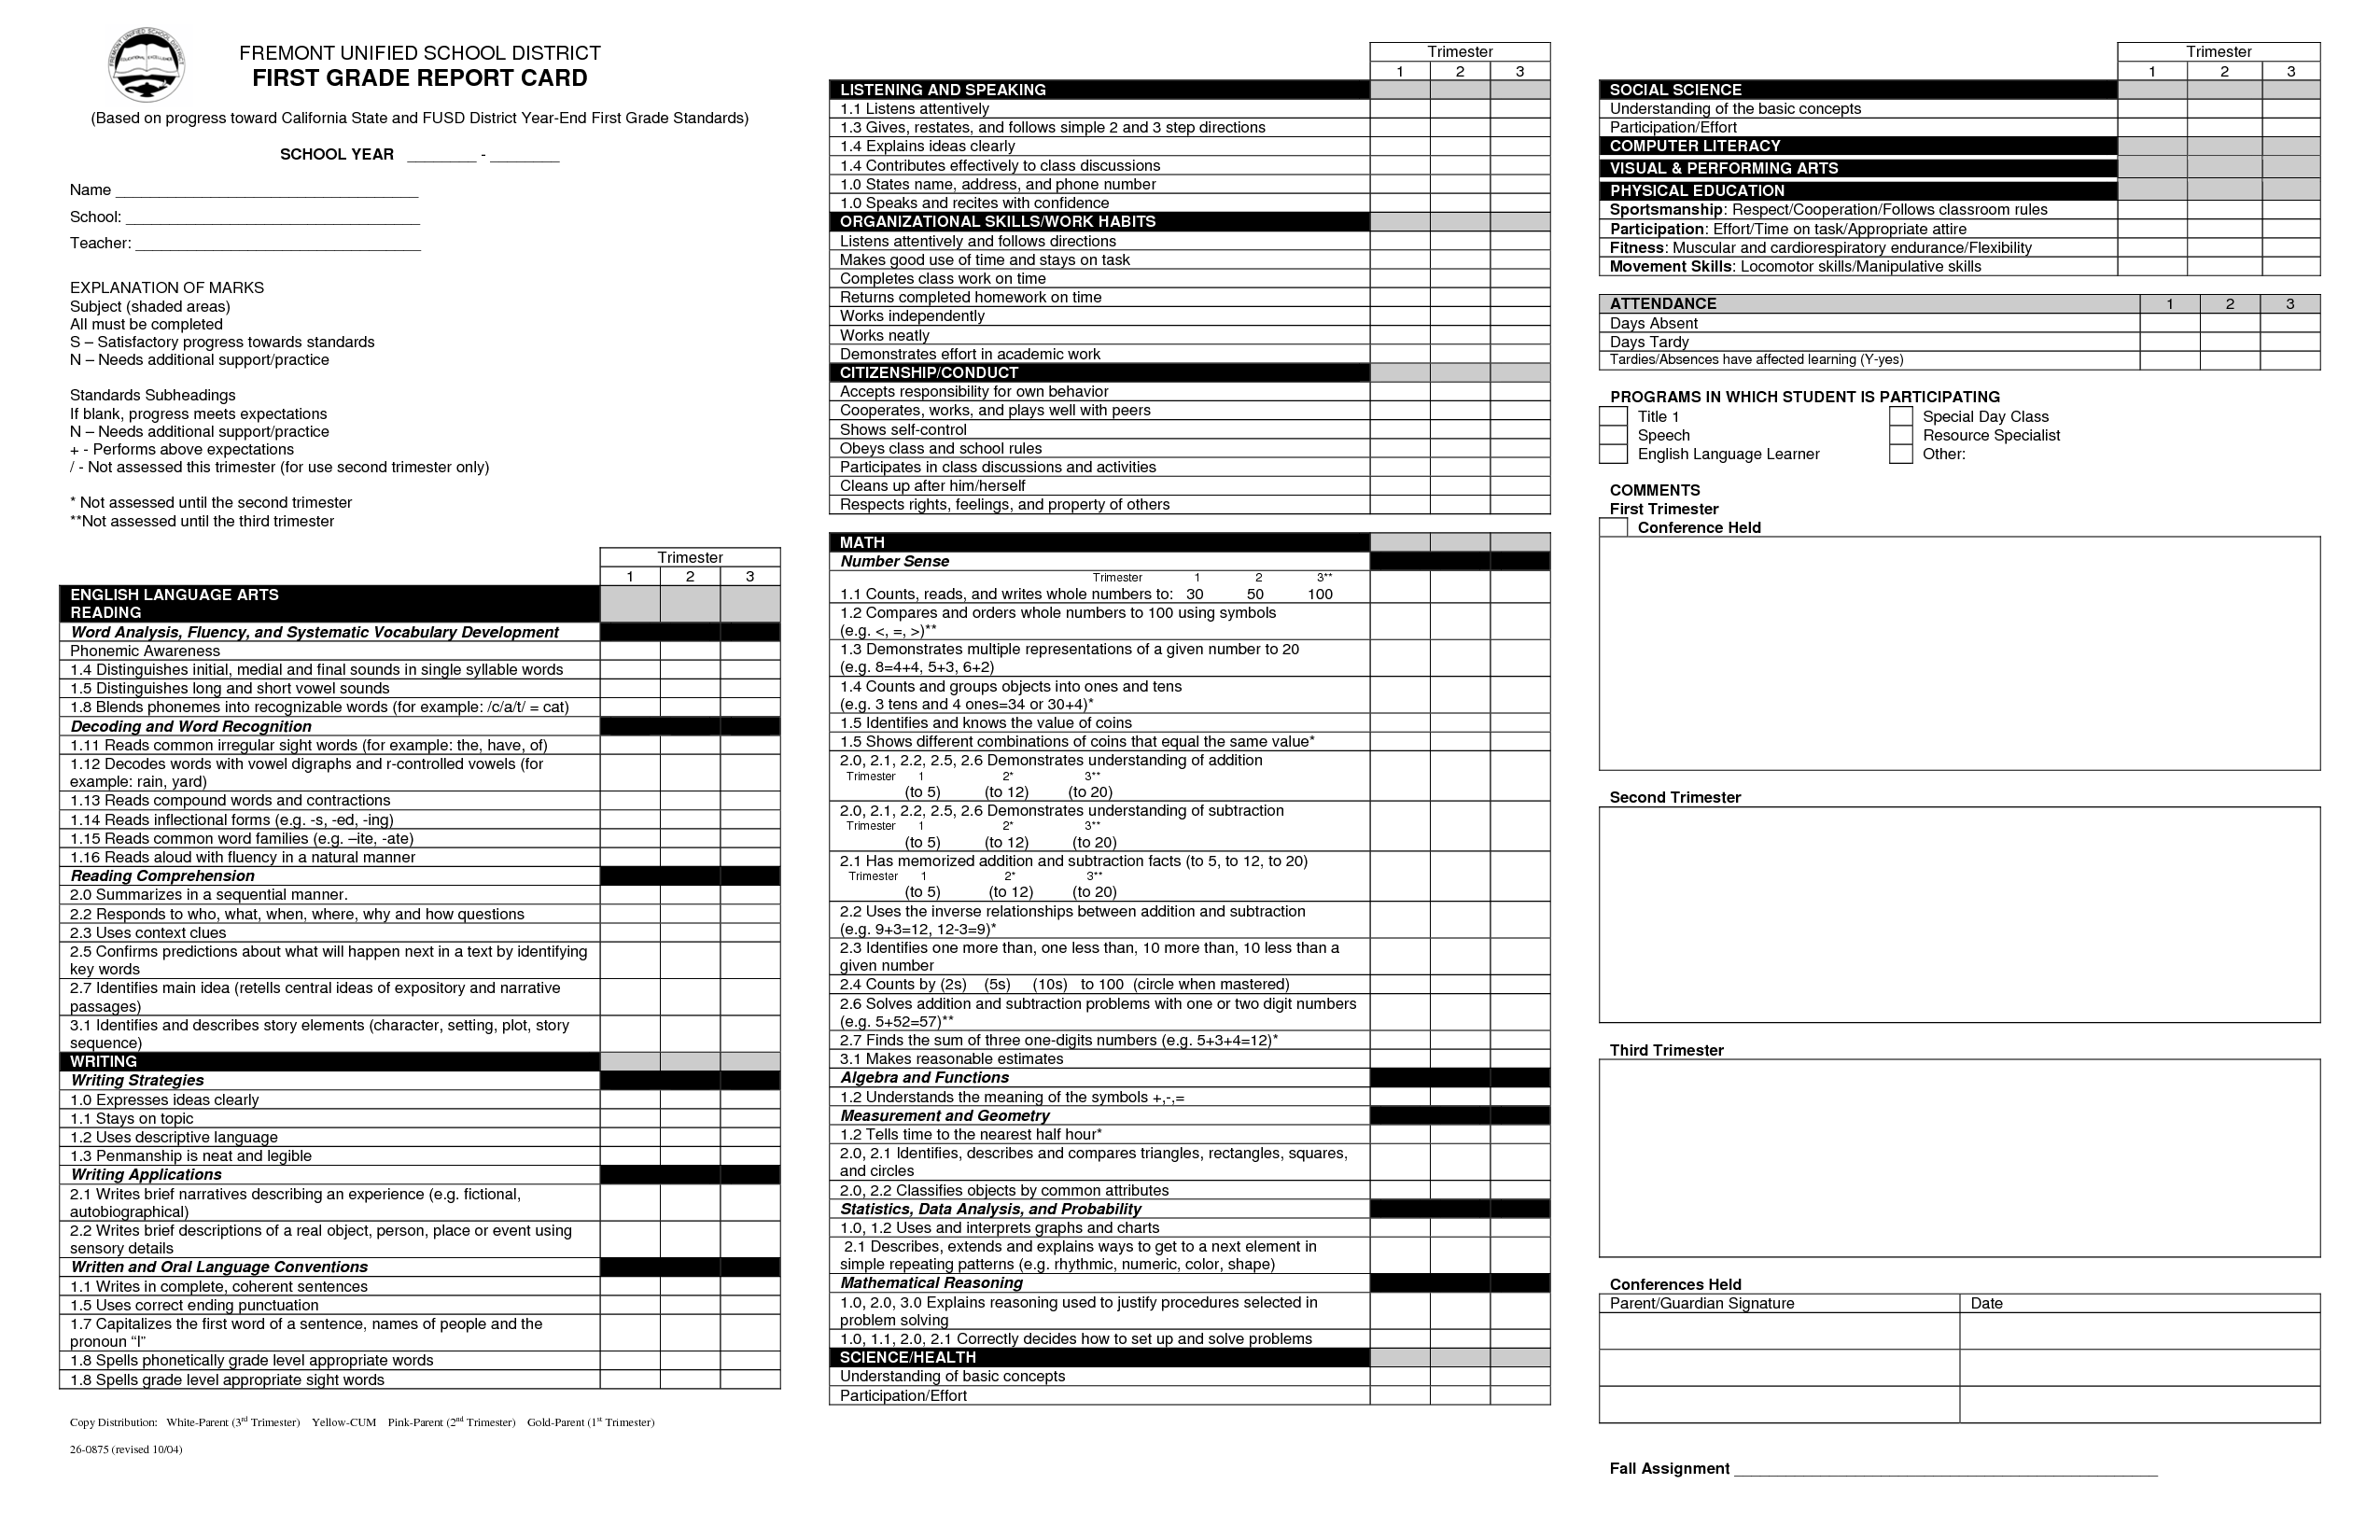 First grade report card template common core 1st grade for First grade progress report template